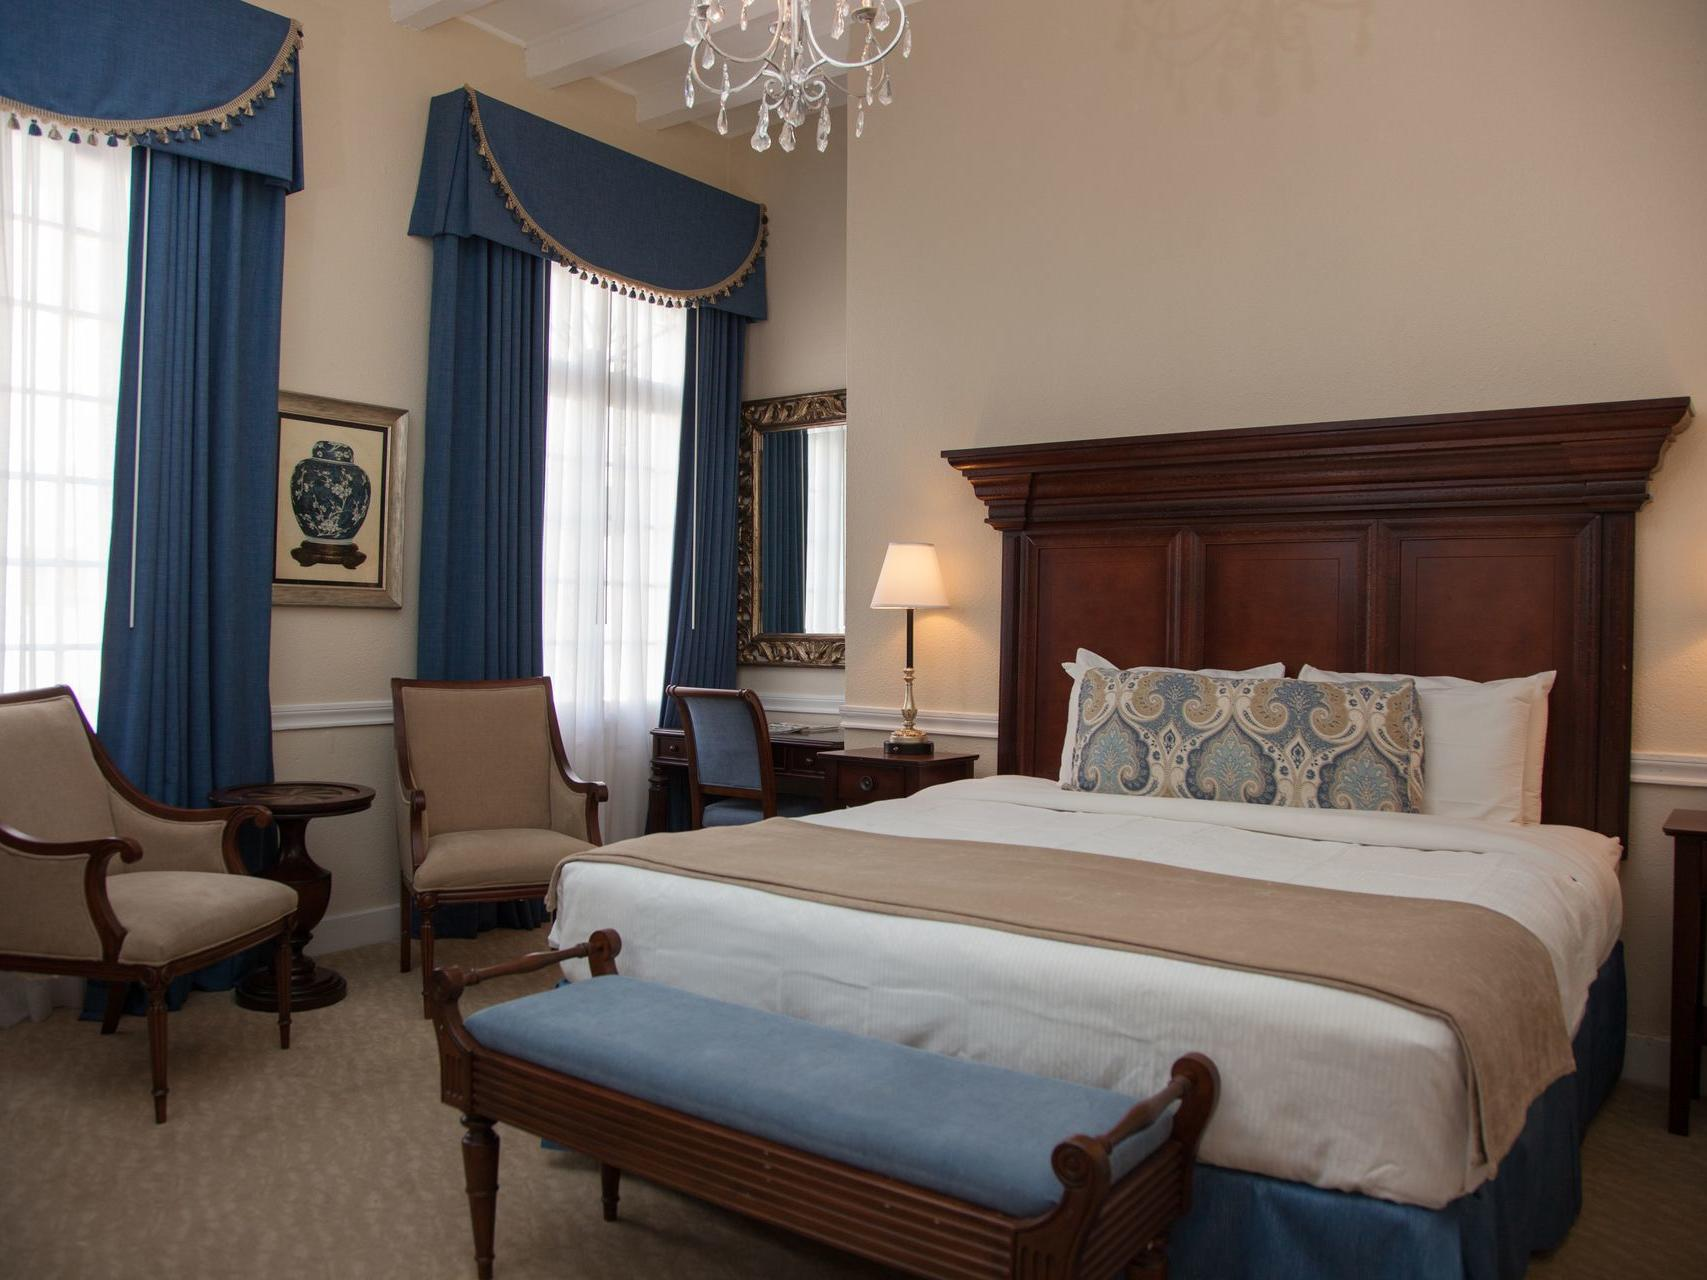 King Bed Suite with one bed at Hotel St. Pierre